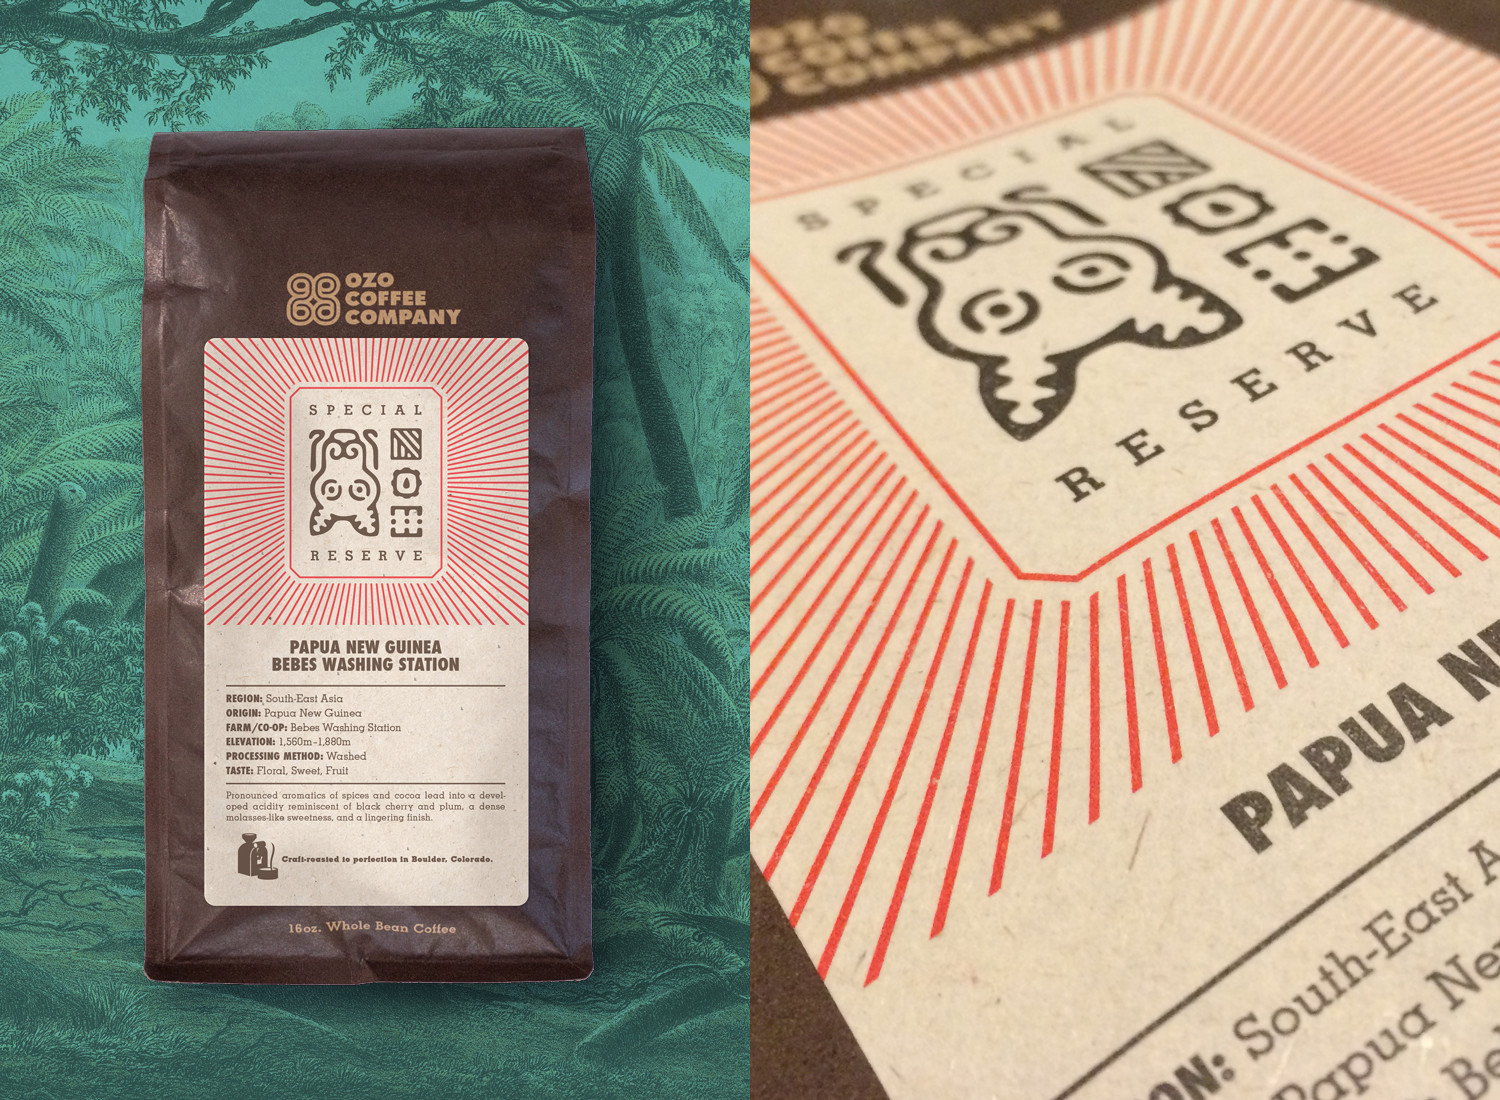 special reserve labels: for coffee not available year round